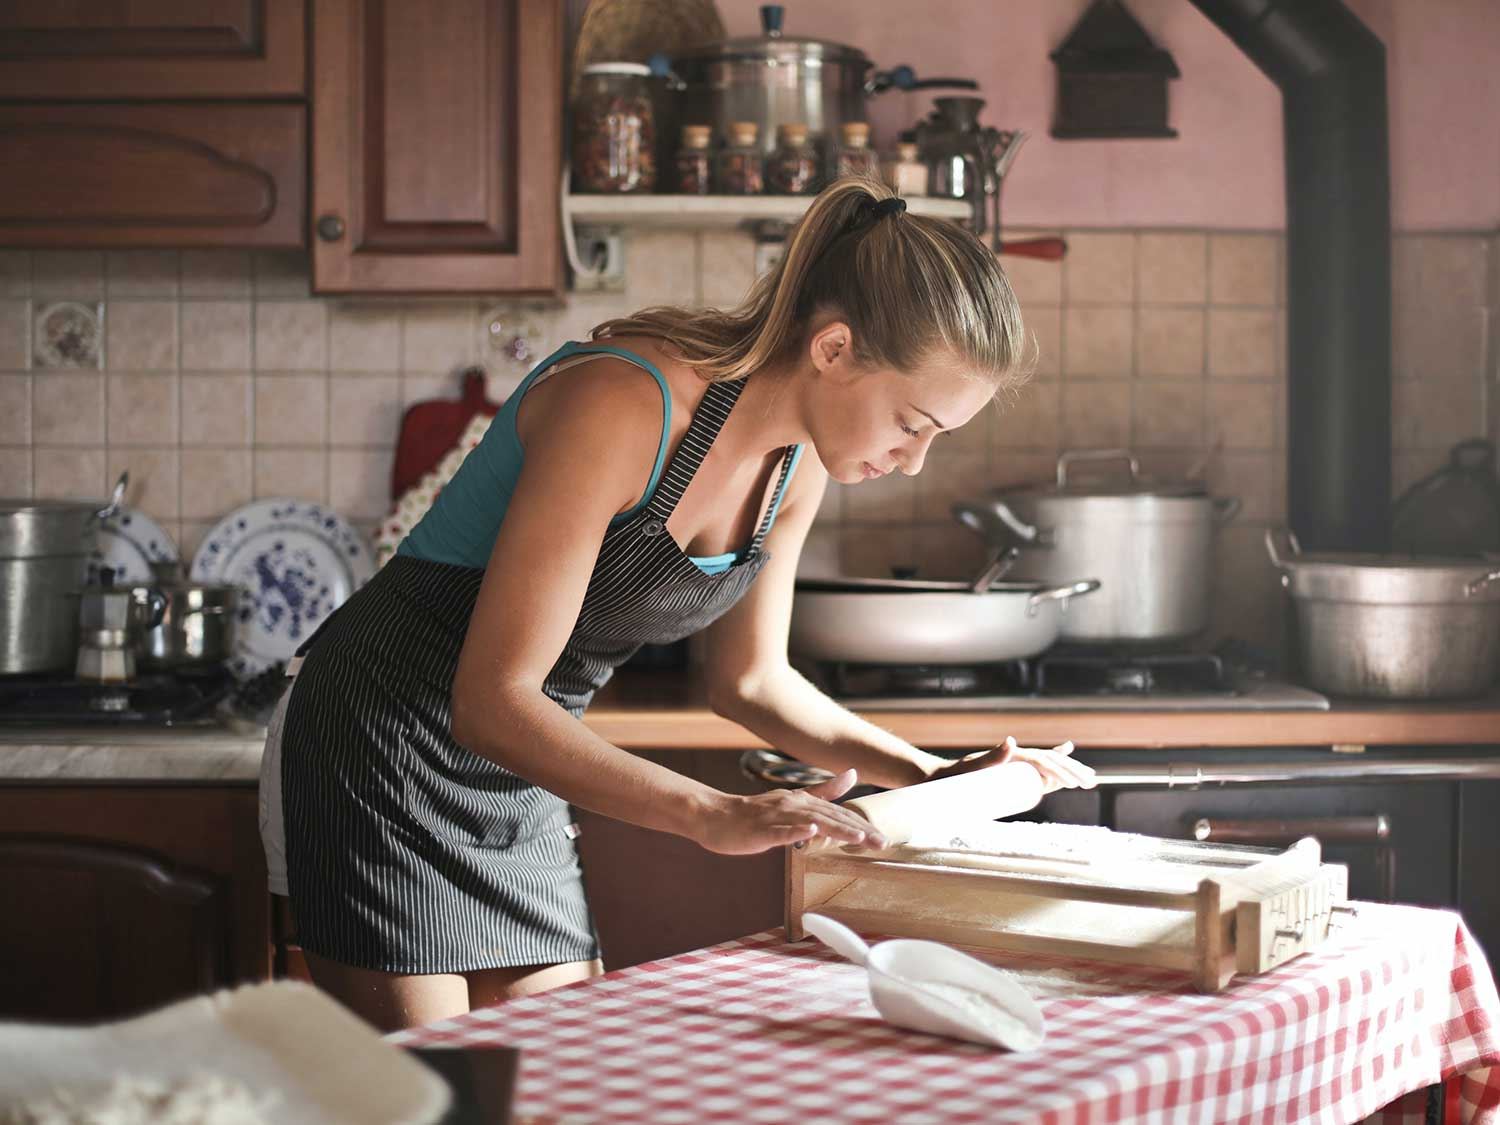 Woman rolling out pie dough while wearing kitchen apron.